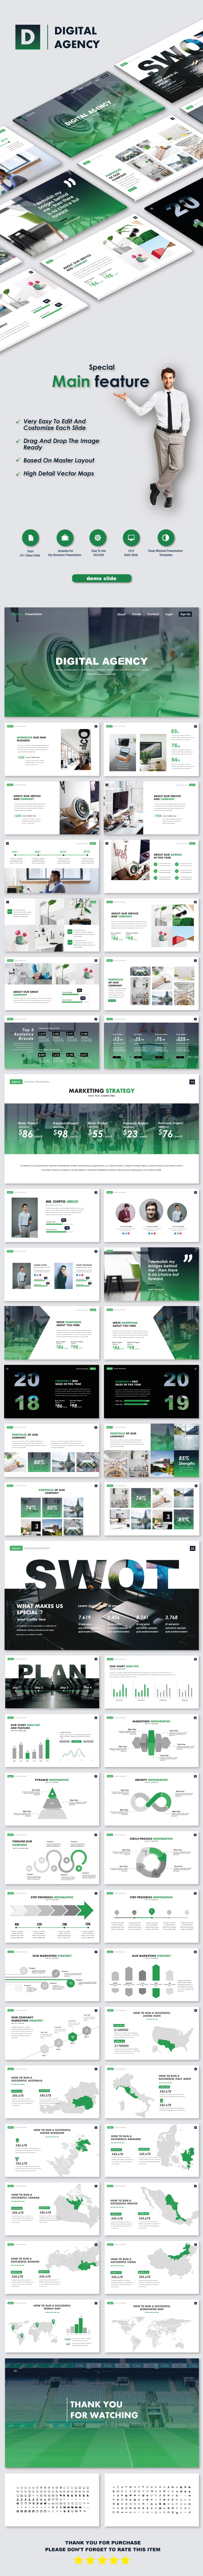 Digital Agency Business PowerPoint Templates